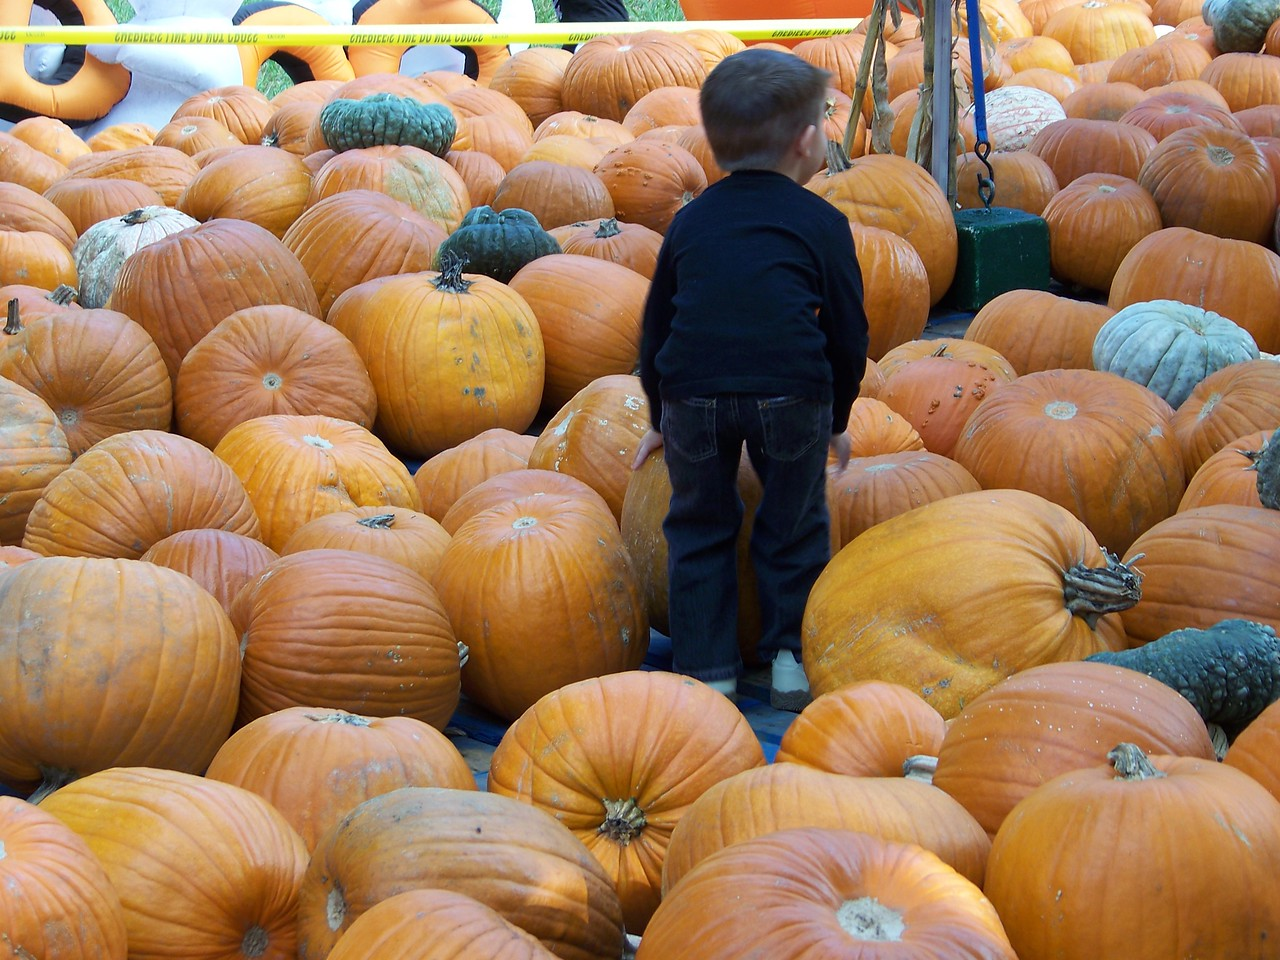 I don't think I've ever seen so many pumpkins in one place before!<br /> [Celebration, Florida]